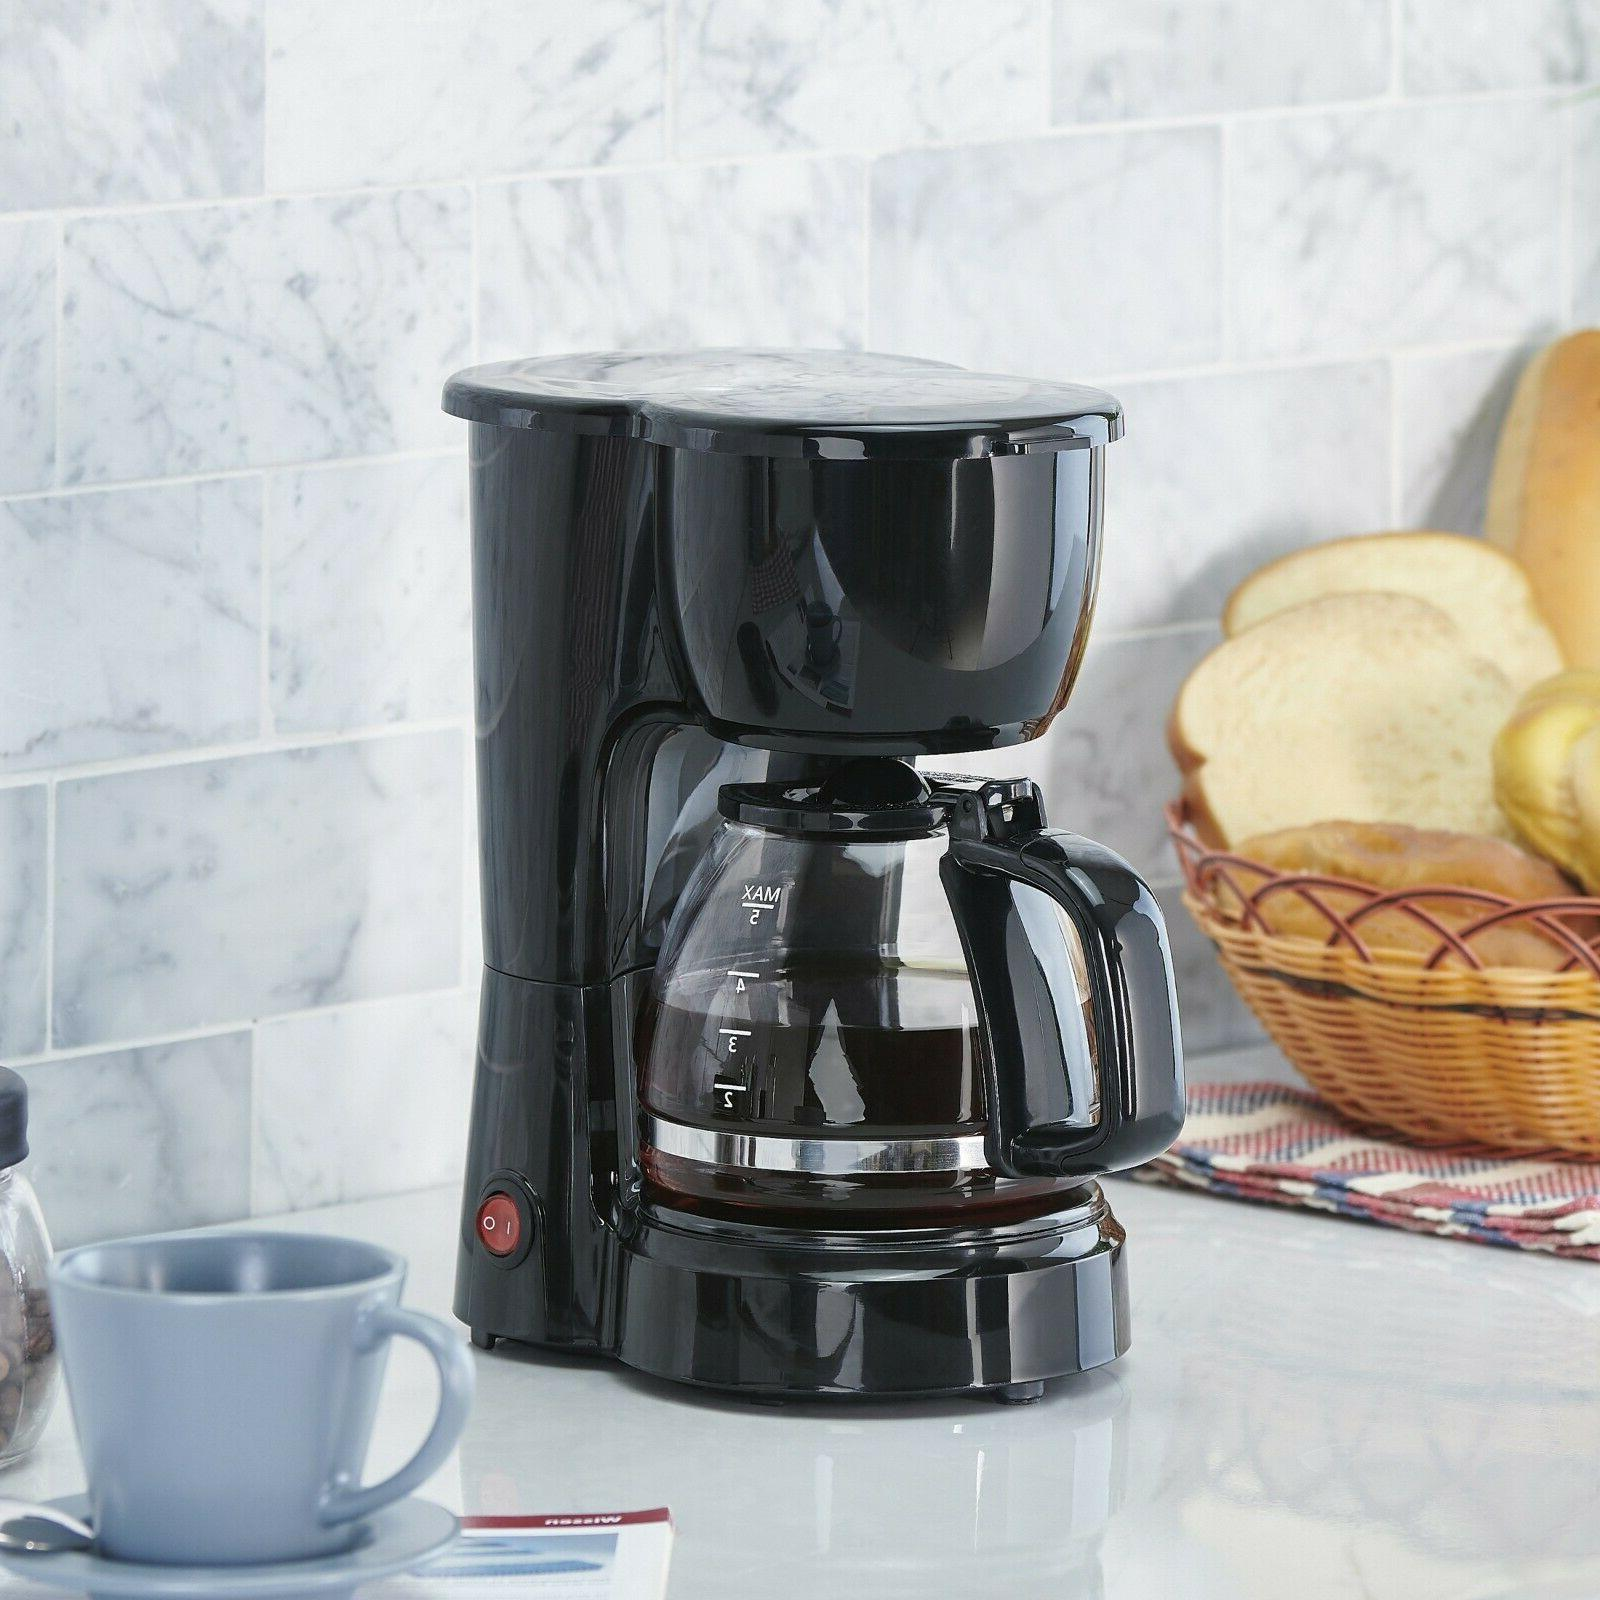 5 Cup Coffee Brew Kitchen Appliance Electric Brewer Home Black